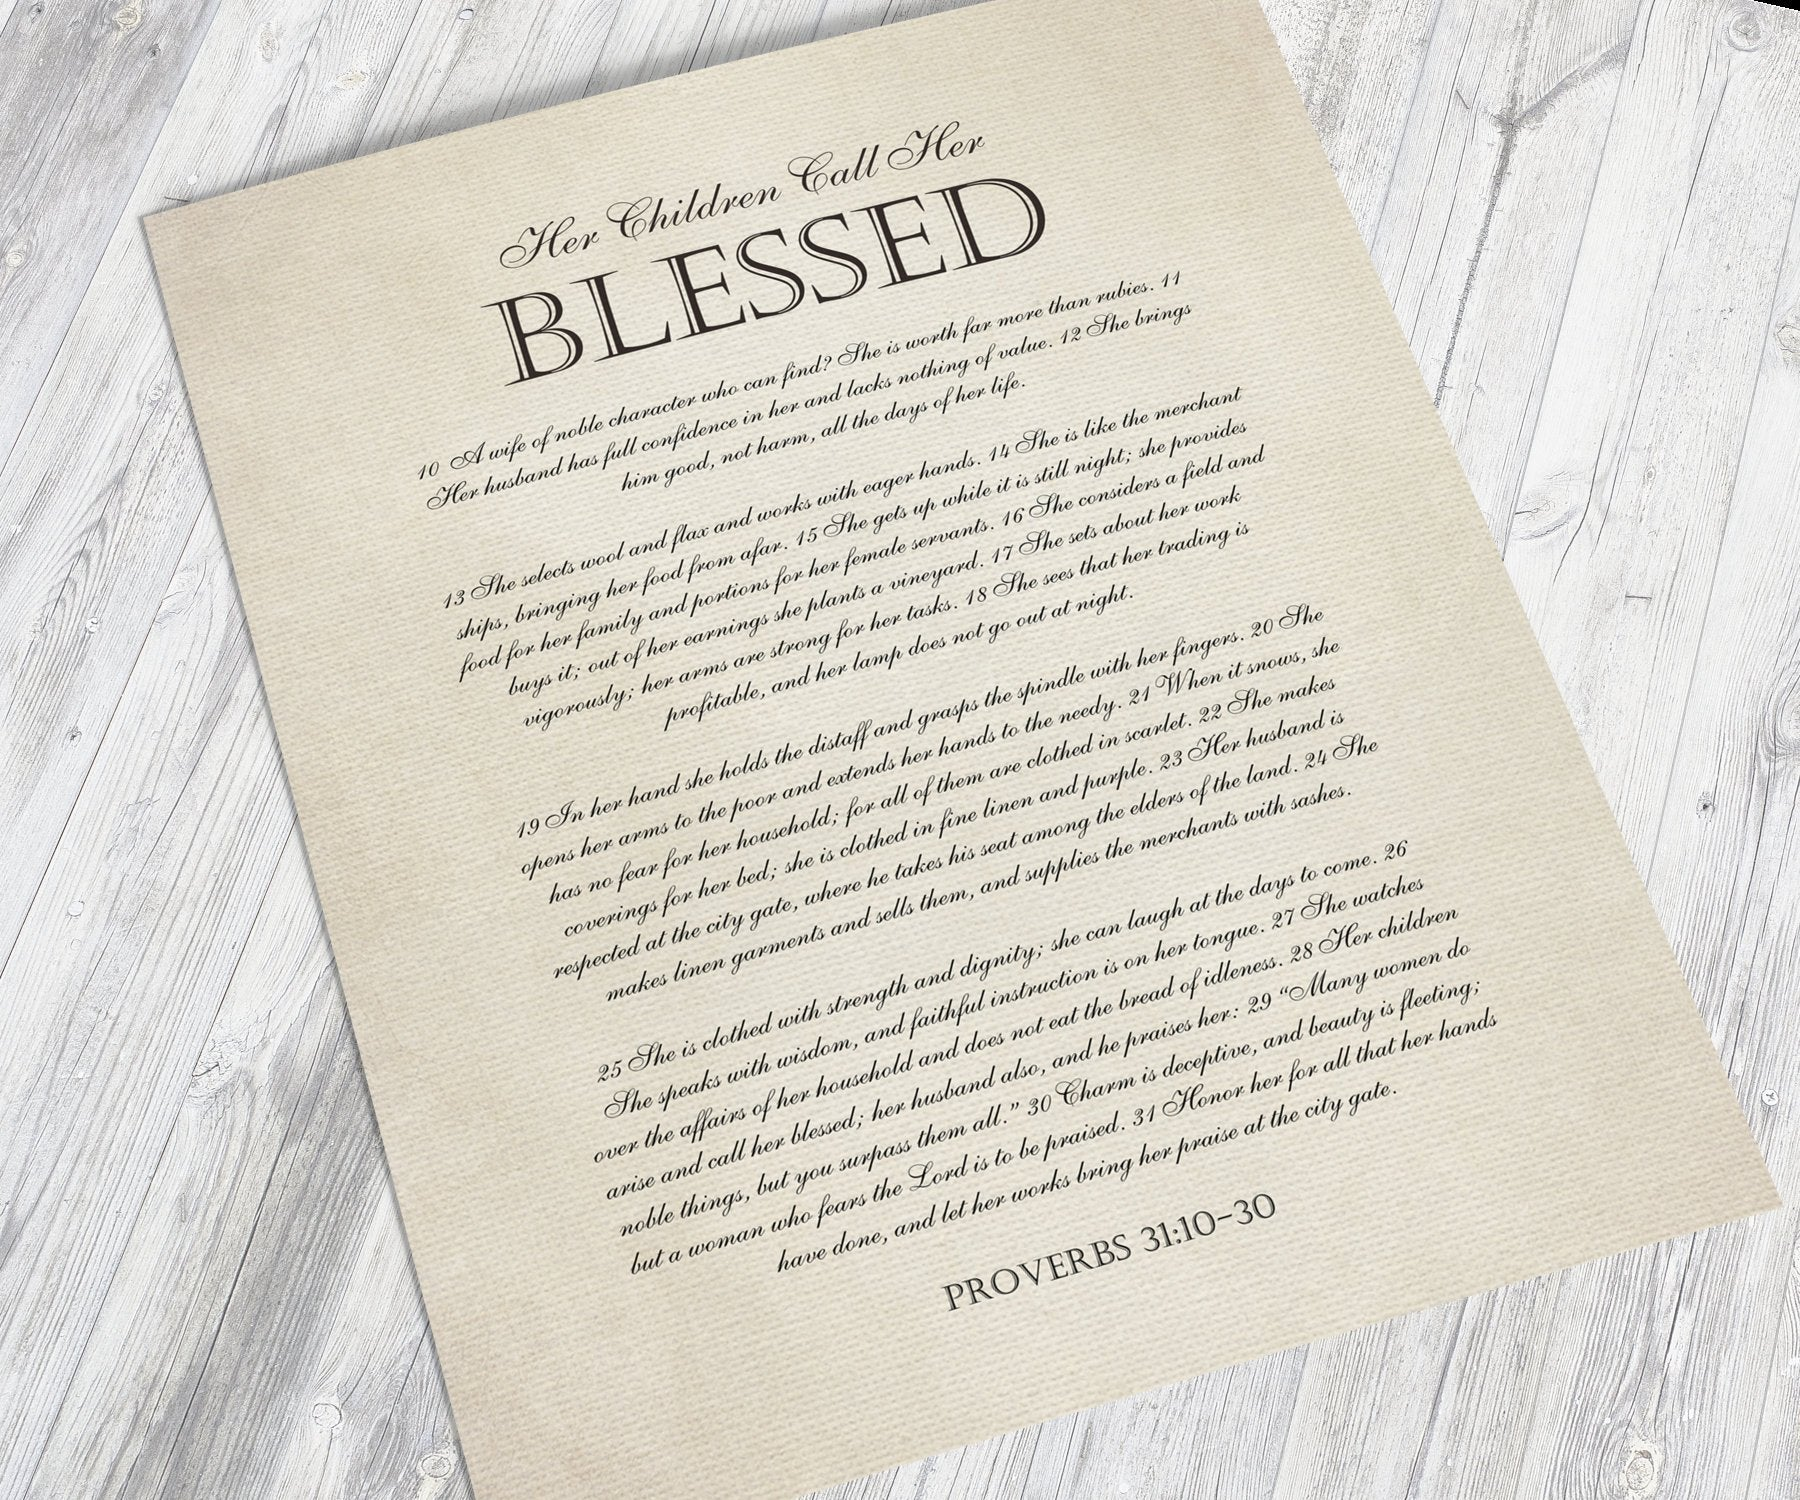 Her Children Call her Blessed, Framed Christian Gift, for Mother, Proverbs 31:10-30, Gift for Wife, Mother's Day Keepsake from Kids, Prov 31